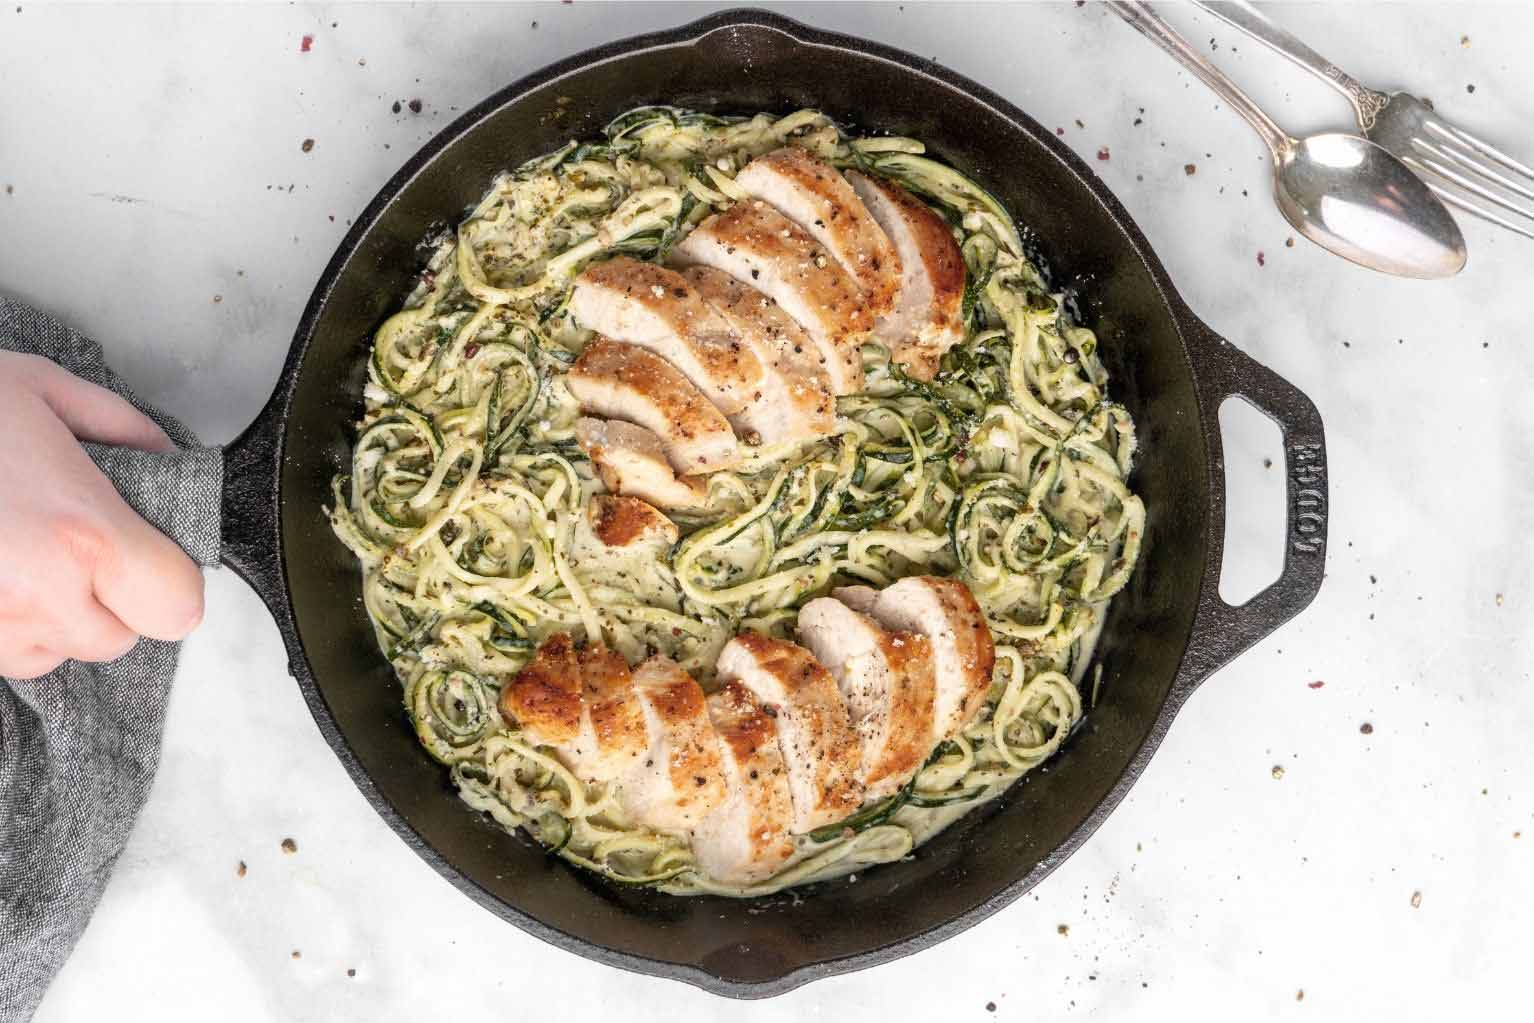 One skillet of zucchini noodles and chicken being held by a person over light gray counter tops.